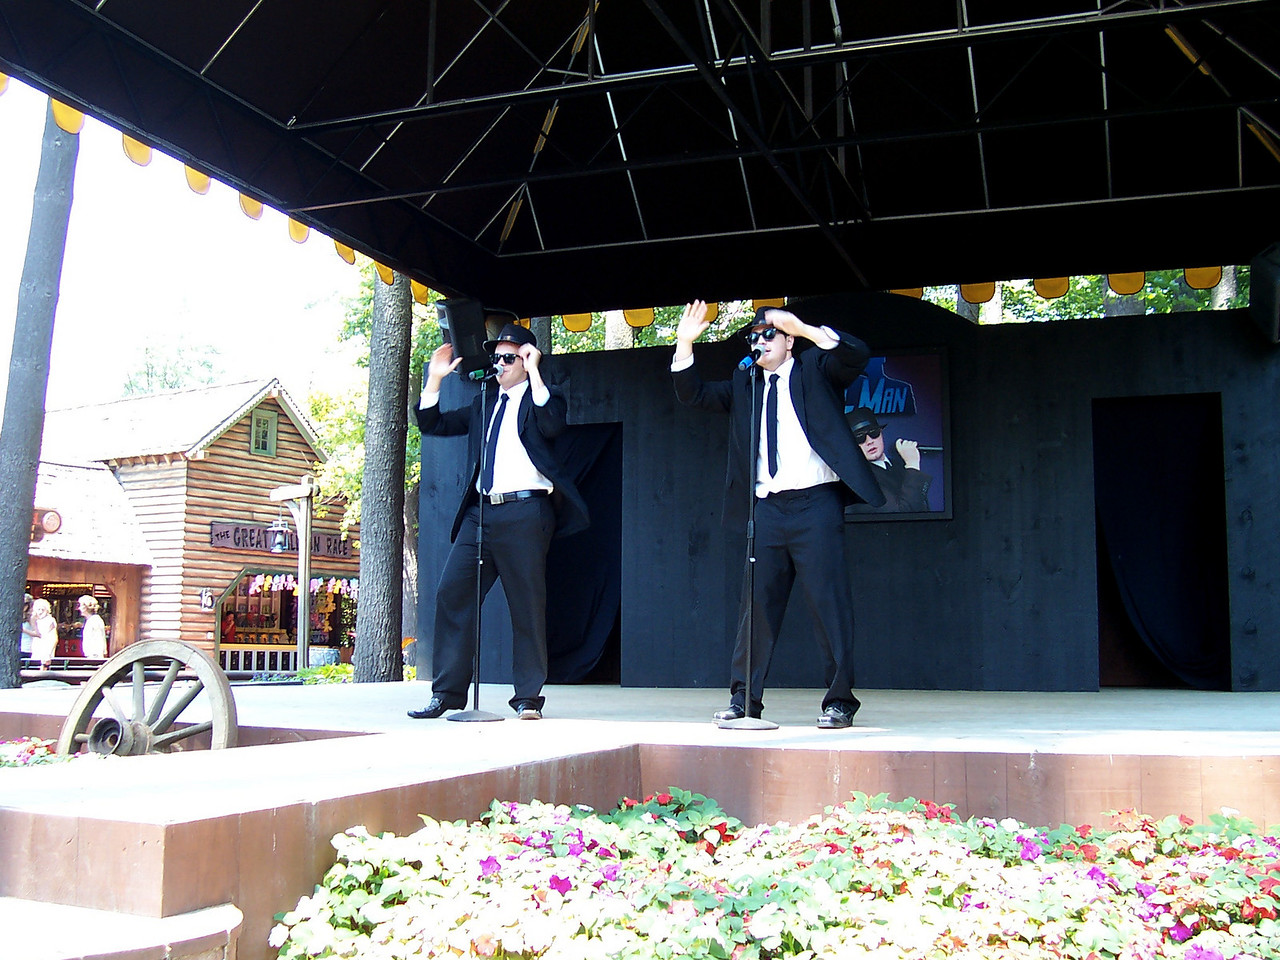 The Soul Man show. It's pretty much the same as last year, with a few different songs.